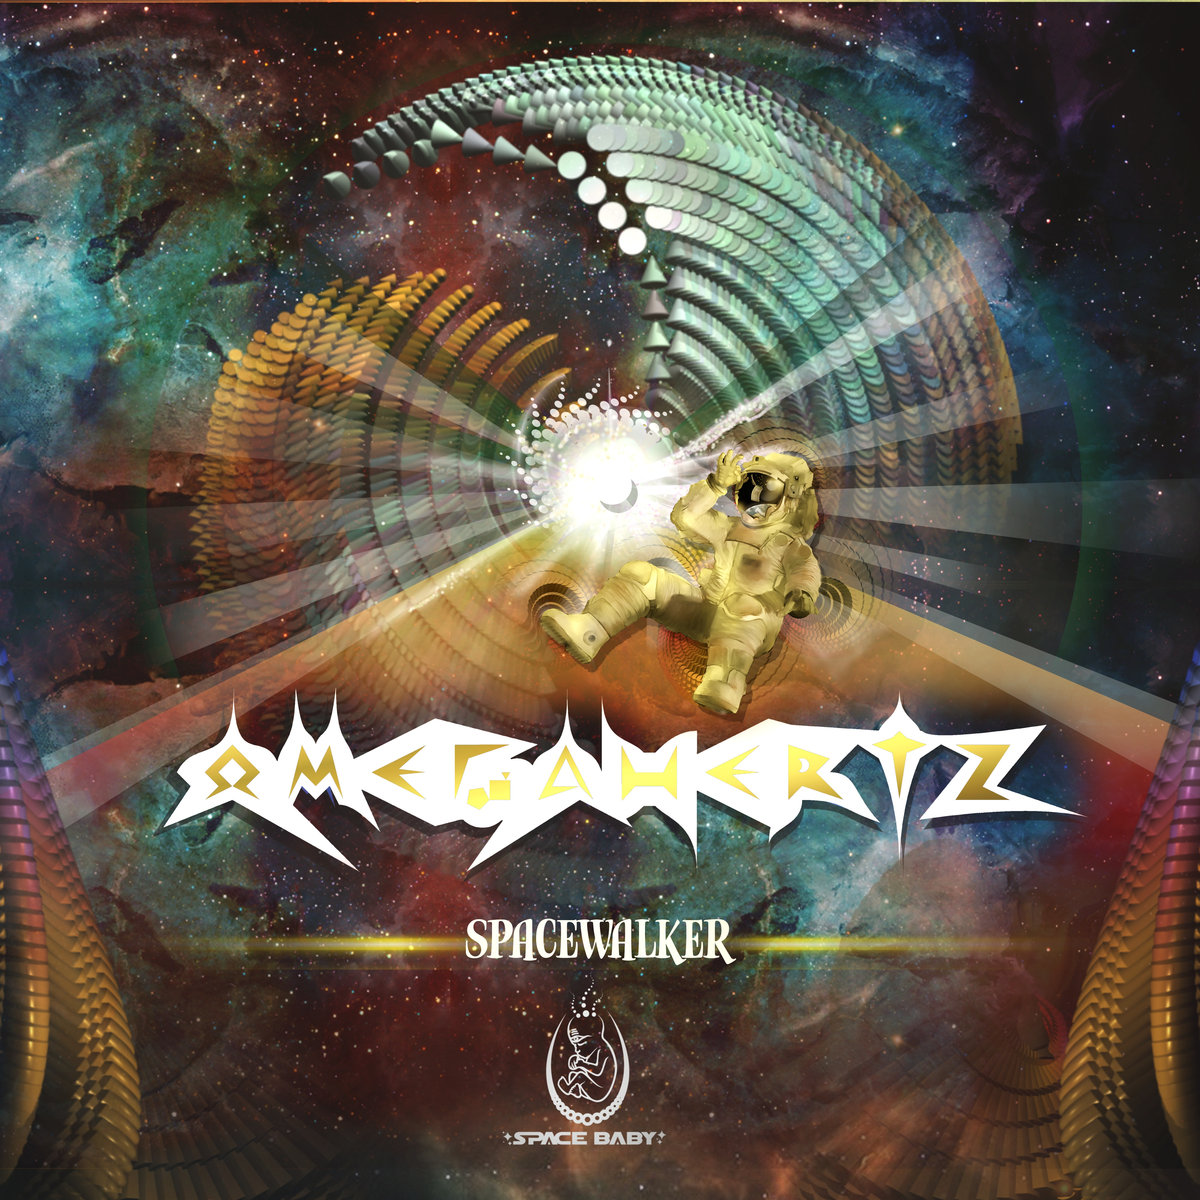 OmegaHertz - Spacewalker